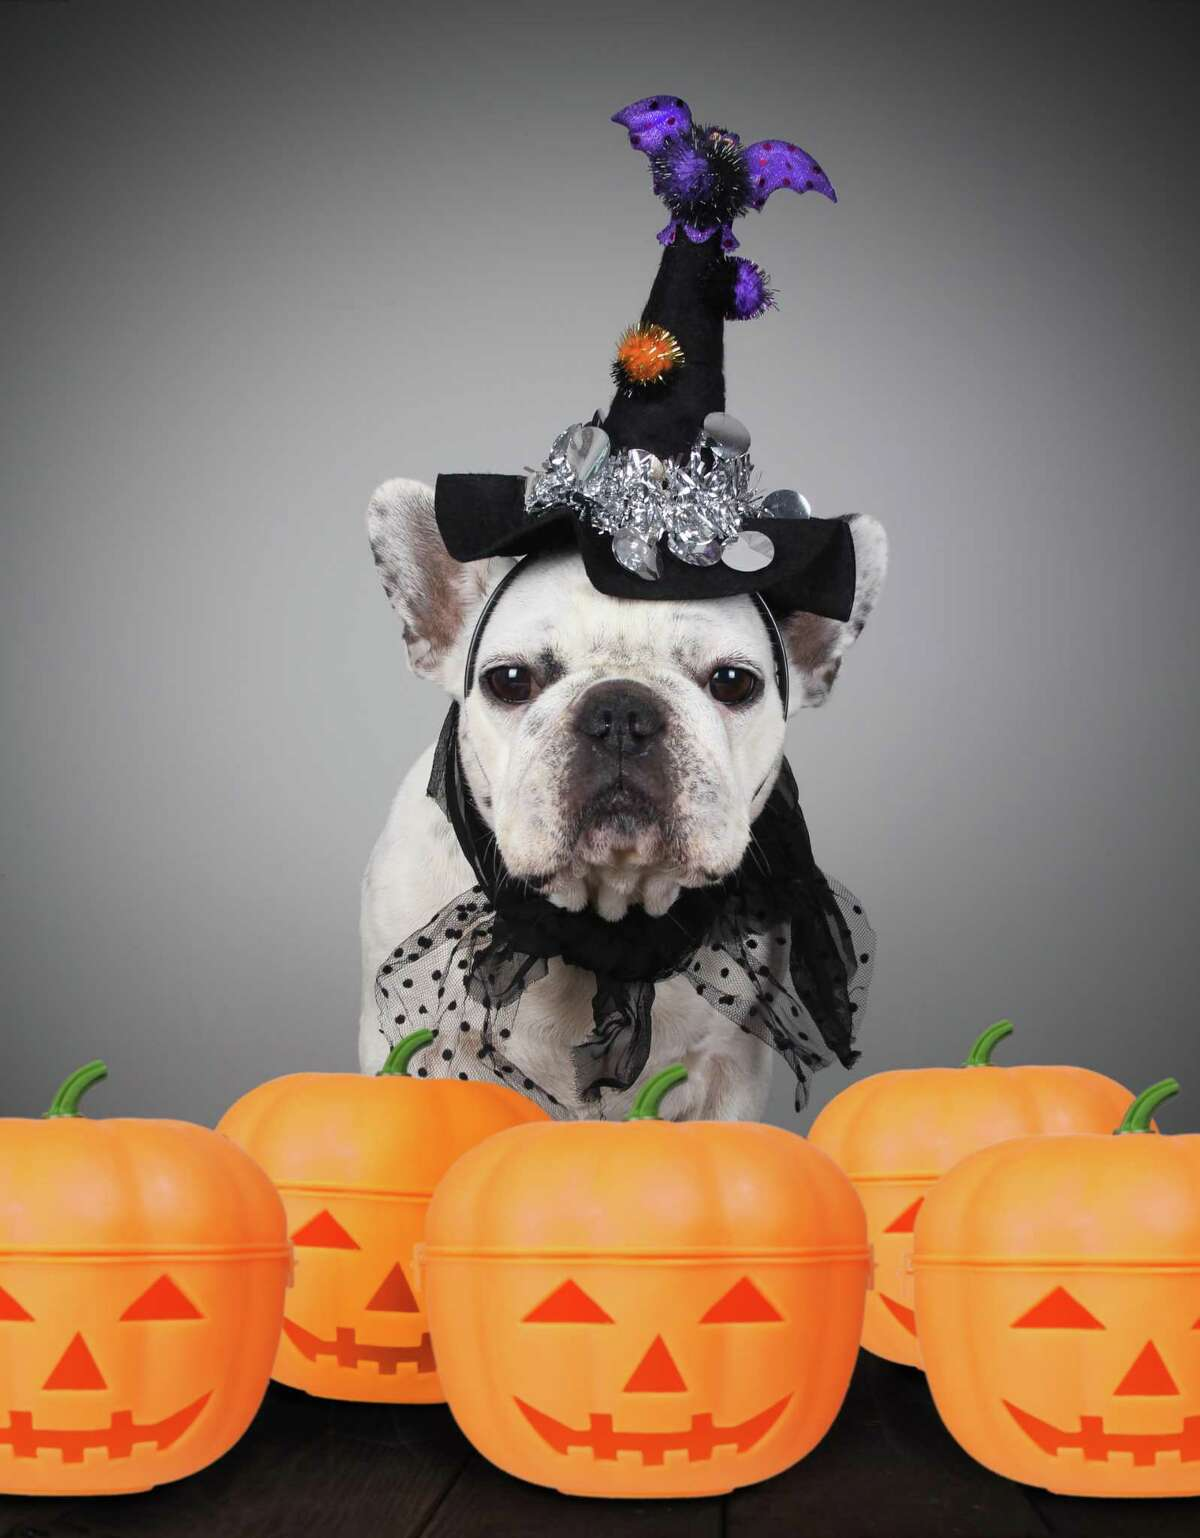 Even with Halloween changes this year, your pets still face dangers from things like ill-gotten candy and too much pumpkin.